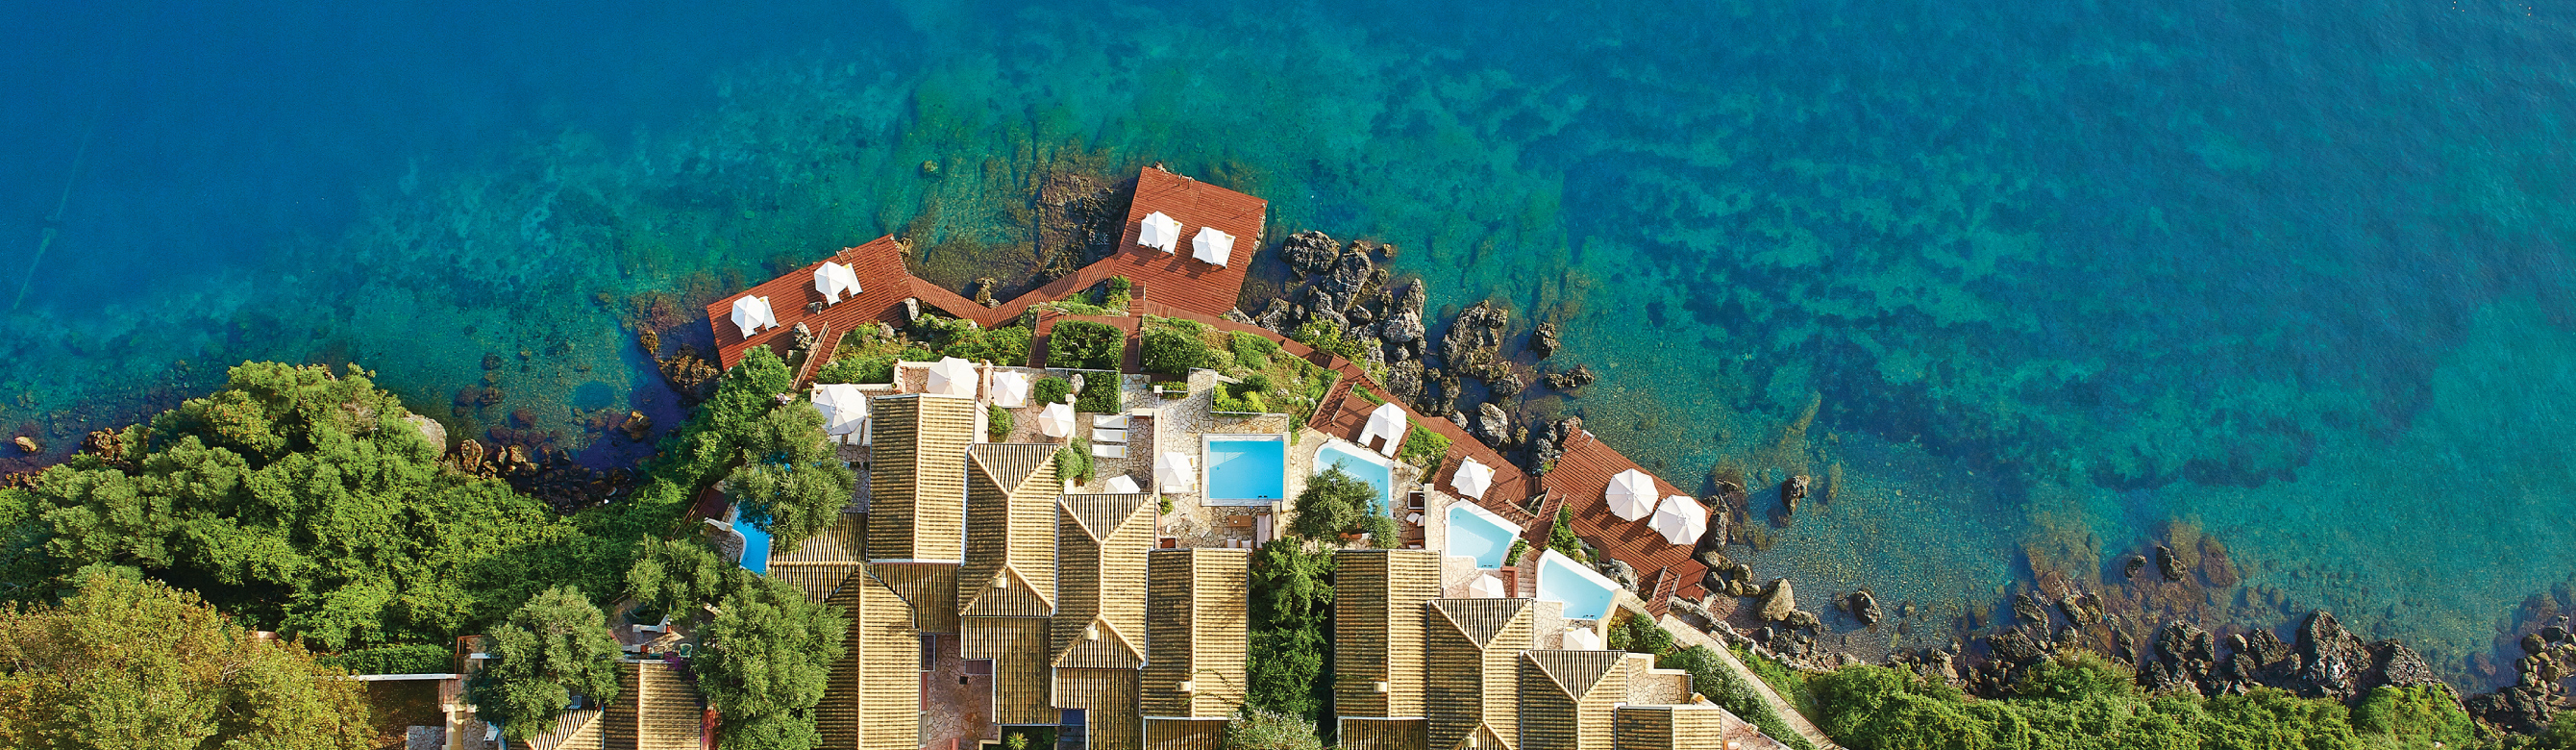 04-Waterfront-Villas-and-Palazzos,-aerial-viewS.jpg